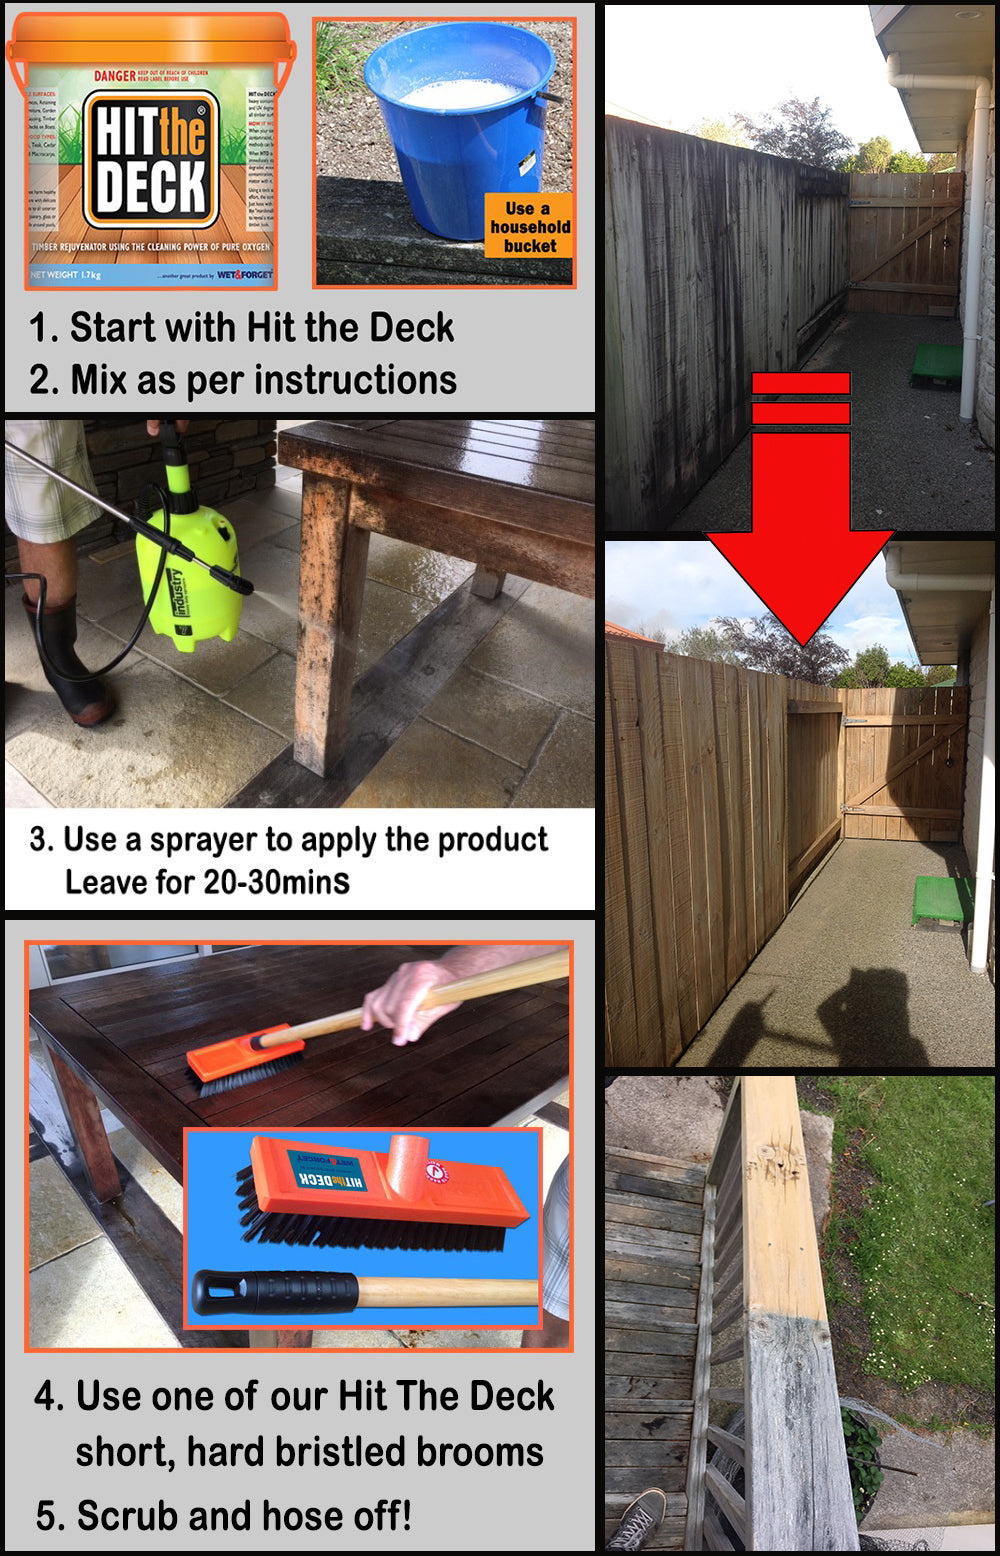 Hit The Deck Deck Cleaner  - So Easy To Use